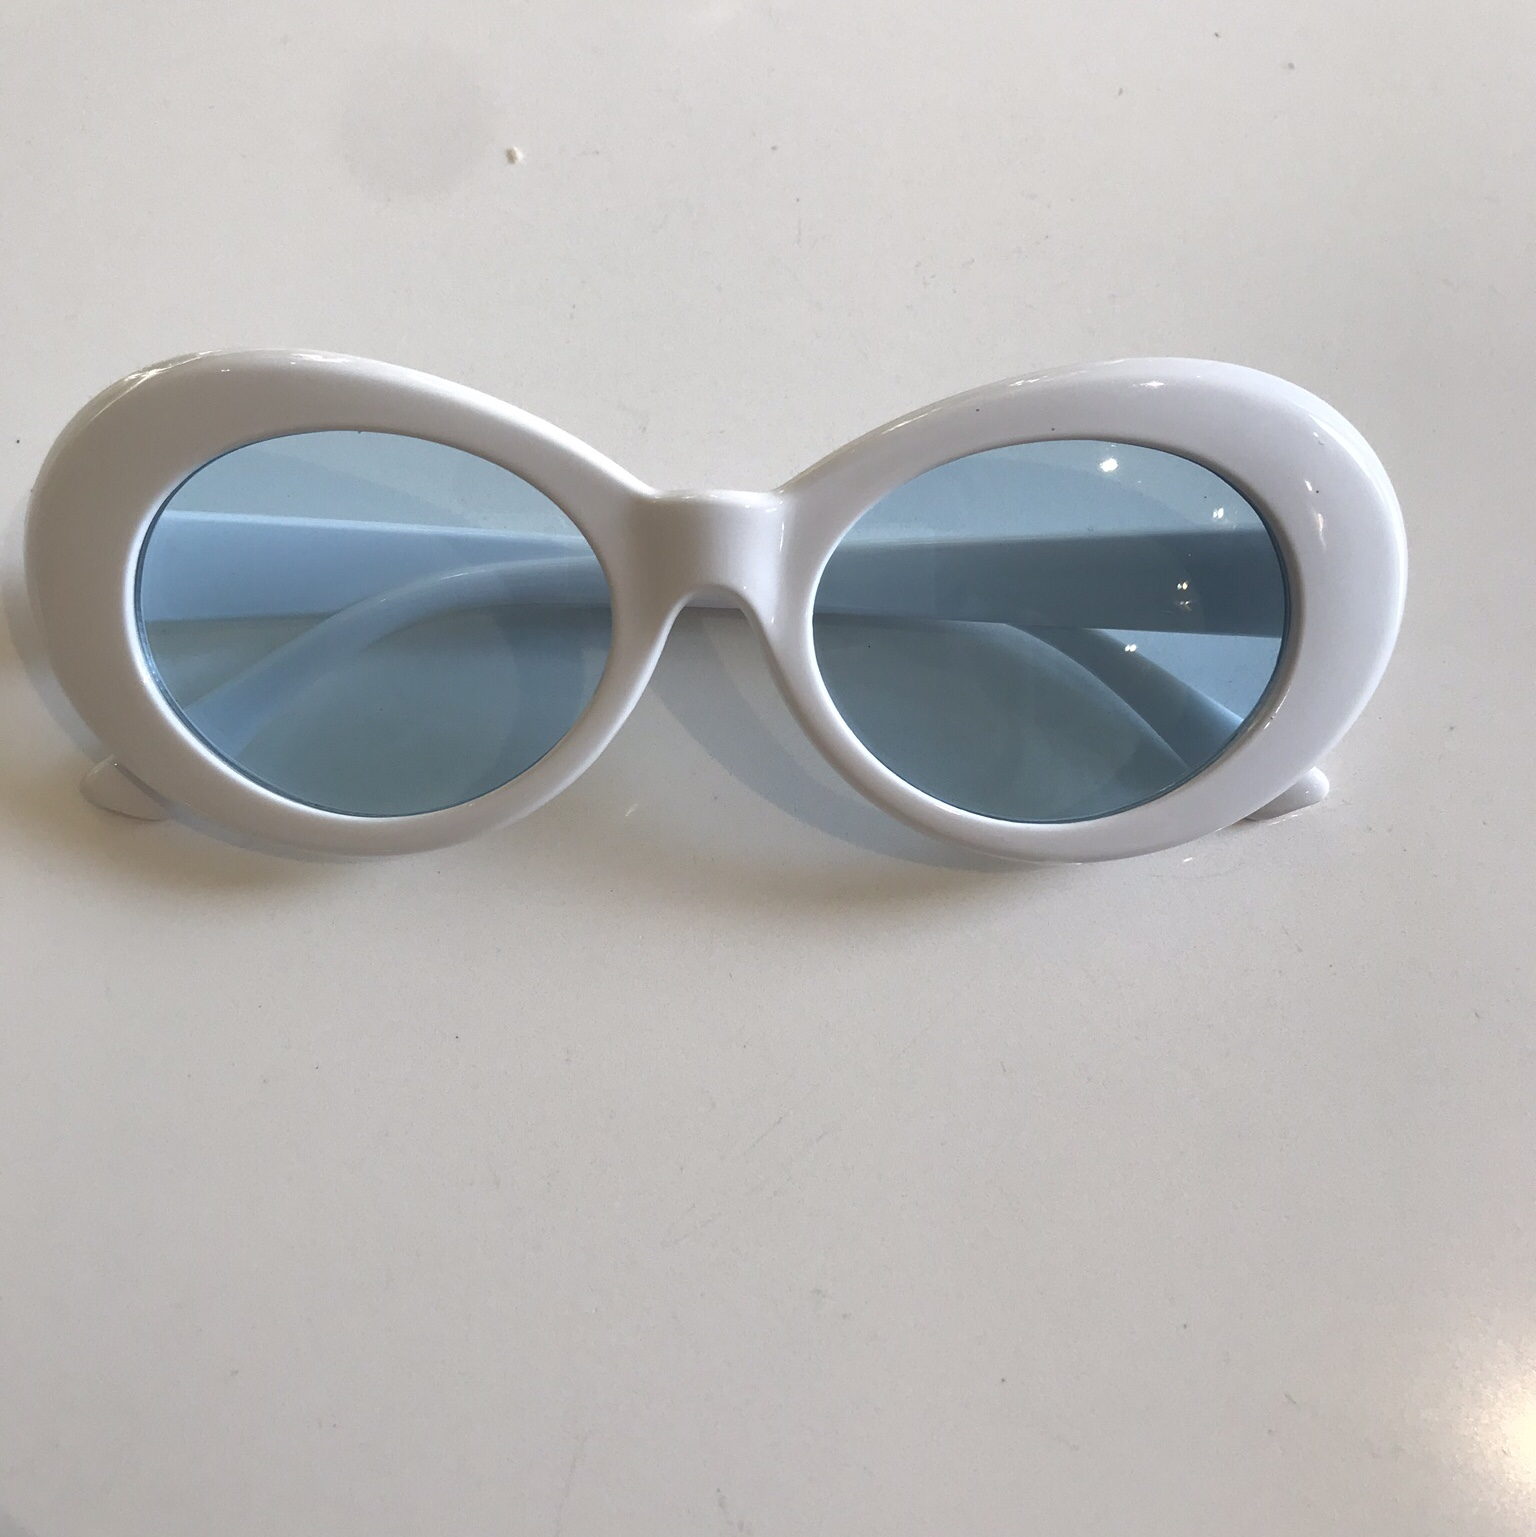 46143f6ff42 Brand New White Clout Goggles Kurt Cobain Style Also in - Depop